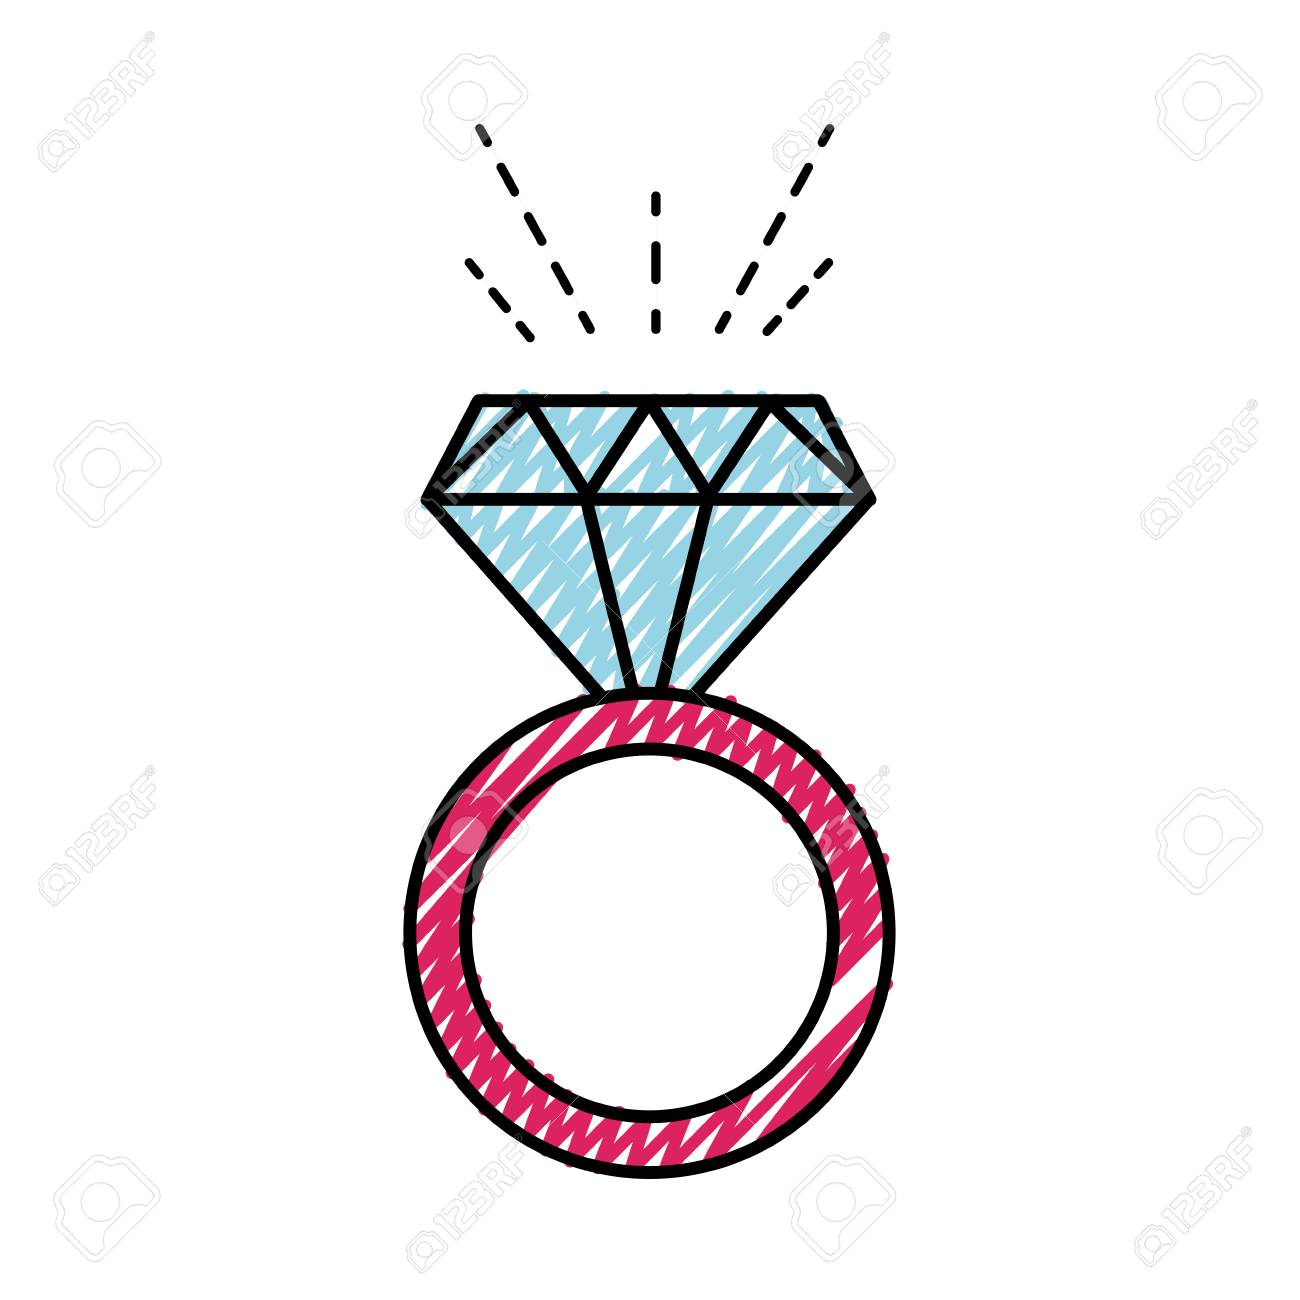 engagement ring wedding with diamondb royalty free cliparts vectors rh 123rf com wedding vector free wedding vector free